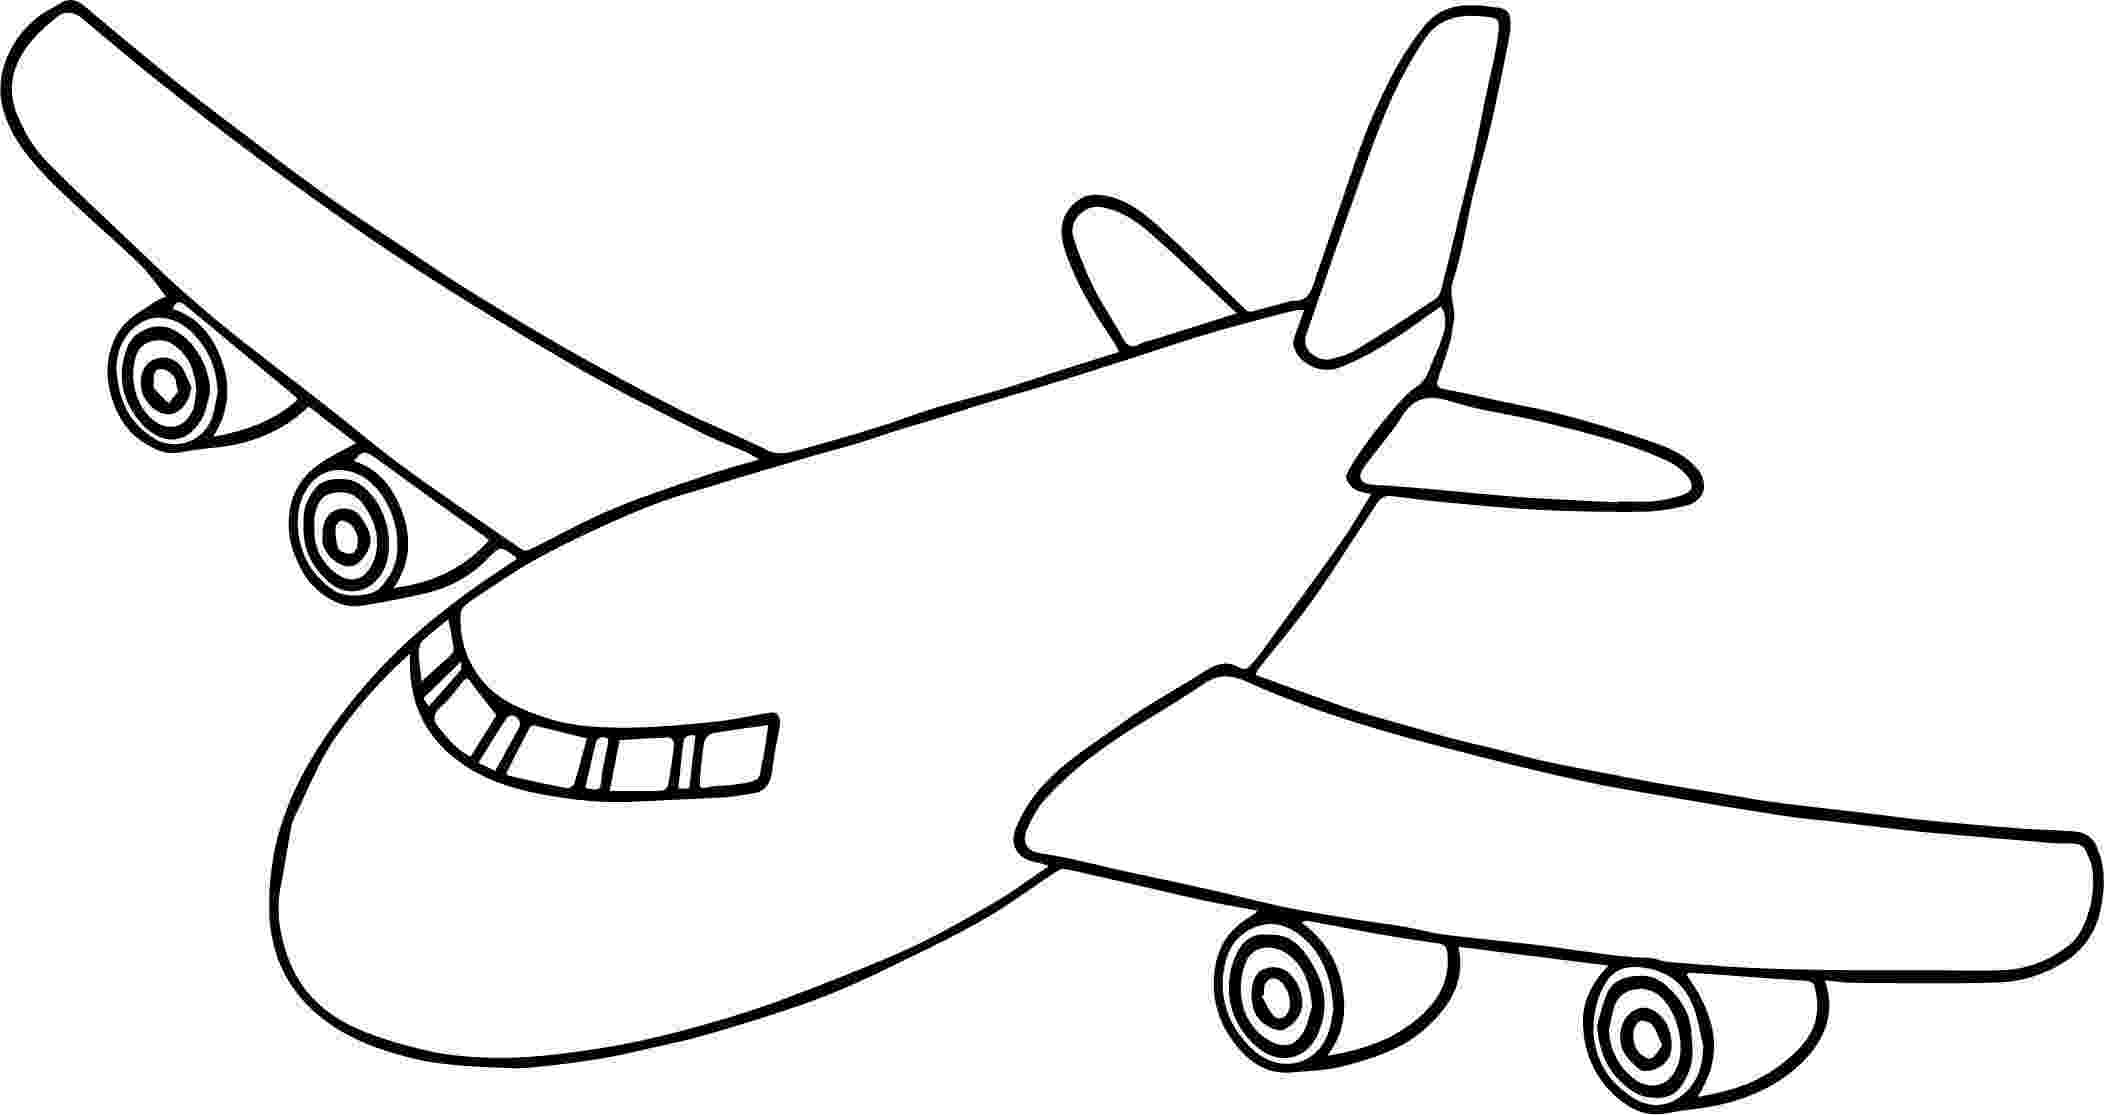 coloring page airplane free printable airplane coloring pages for kids page airplane coloring